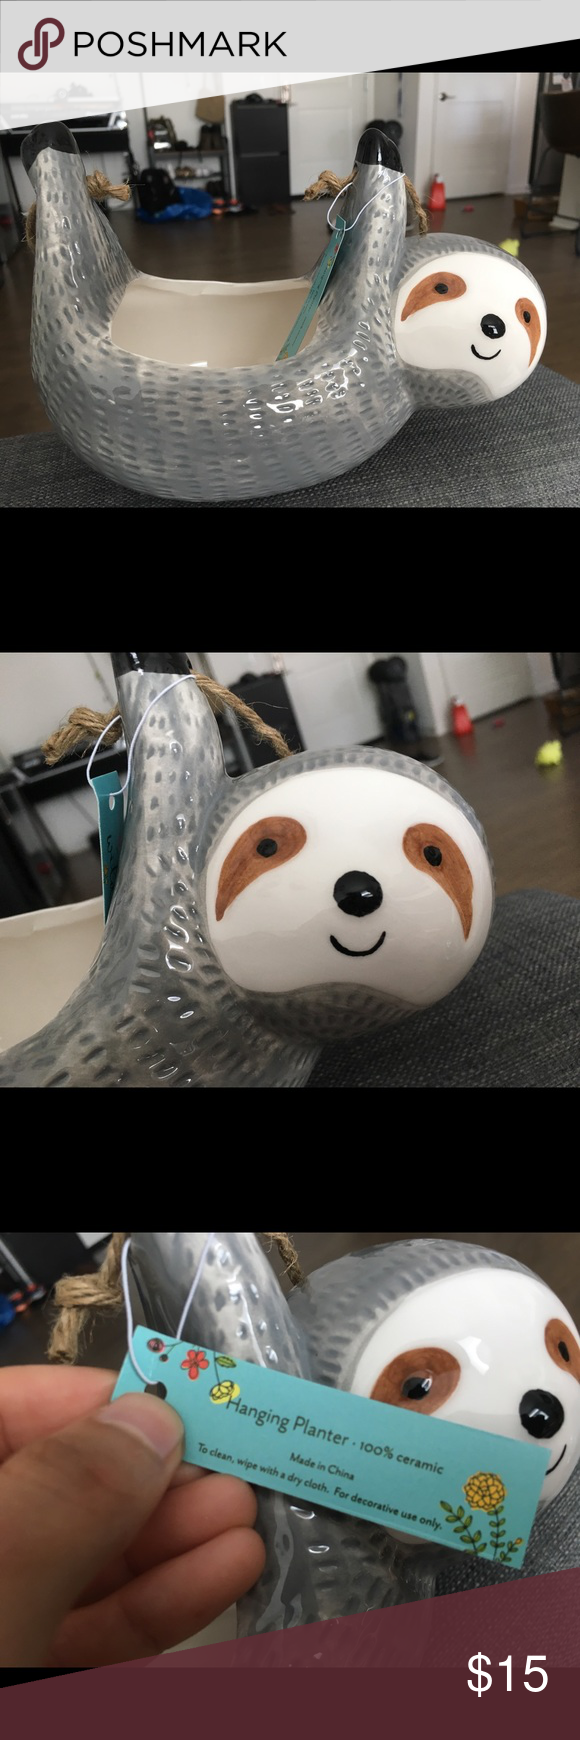 Urban outfitters hanging sloth planter Brand new with tags